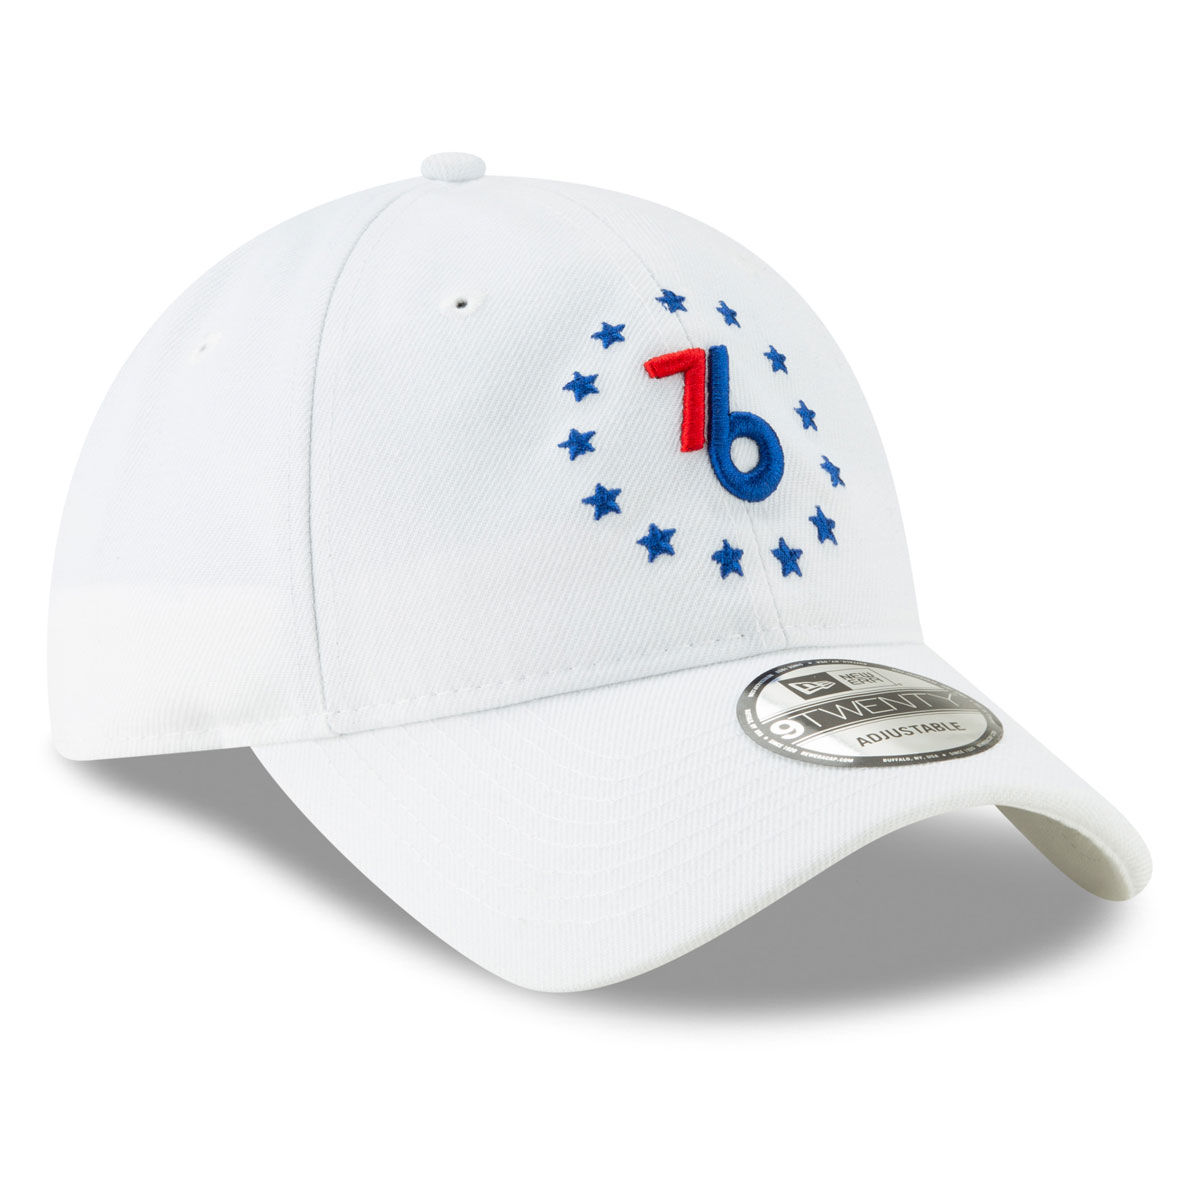 Philadelphia 76ers Adult 9TWENTY Adjustable Hat